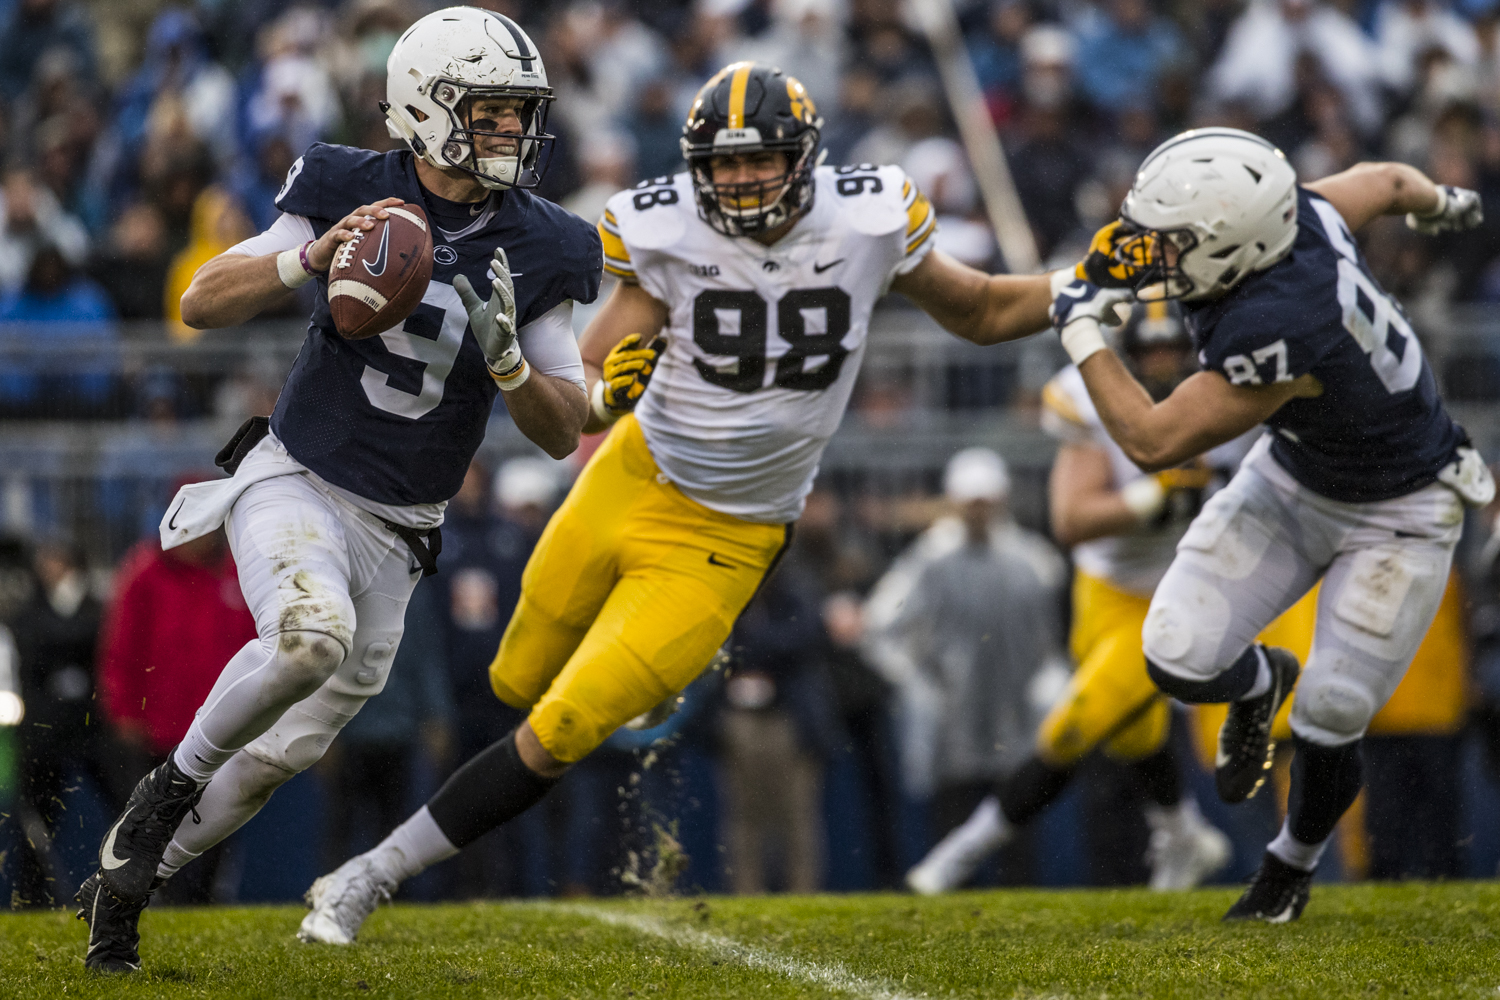 Penn State quarterback Trace McSorley rolls out of the pocket during Iowa's game against Penn State at Beaver Stadium on Saturday, October 27, 2018. The Nittany Lions defeated the Hawkeyes 30-24.